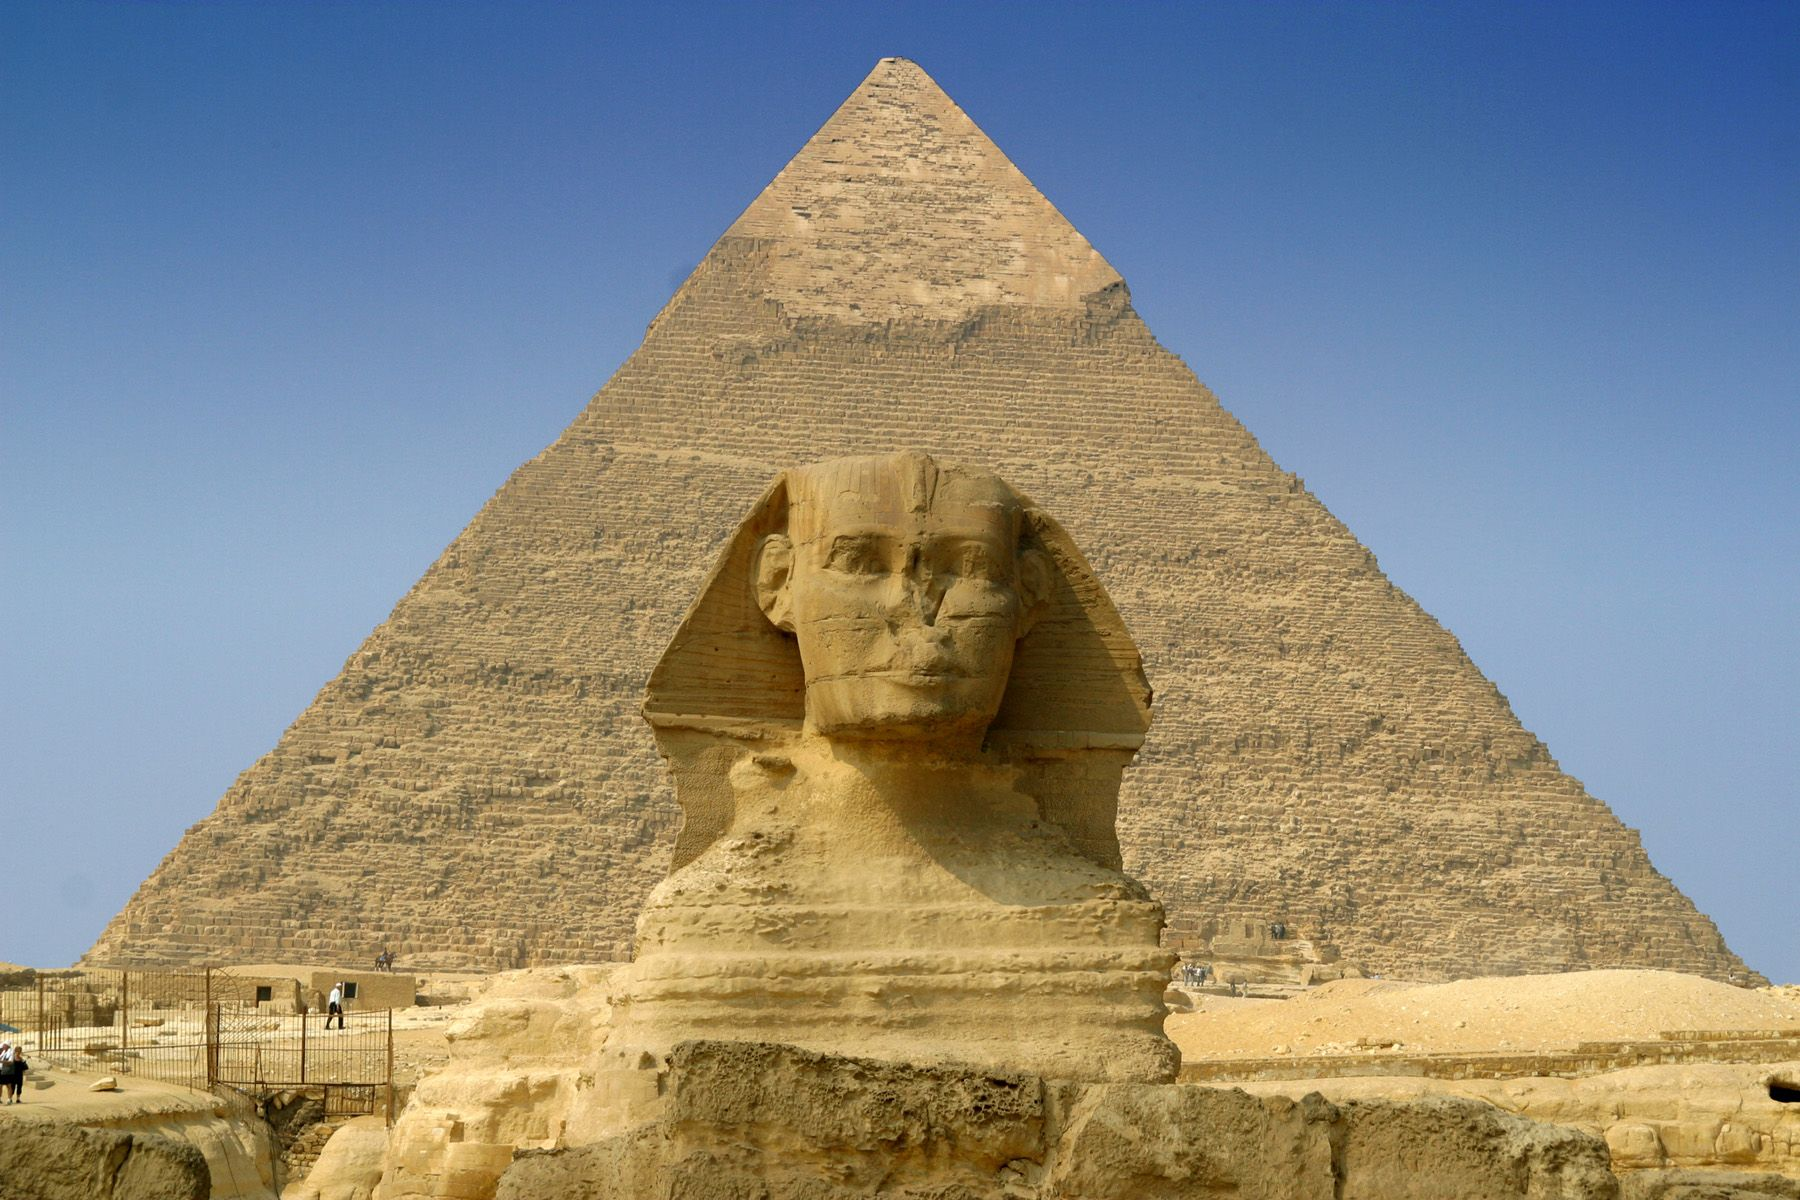 the history of building the monument of the great sphinx Most archaeologists say the sphinx is about 4,500 years old  12, 1999 — for  years, egyptologists and archaeologists have thought the great sphinx of   sphinx is believed to resemble khafre, the pharaoh who built one of.